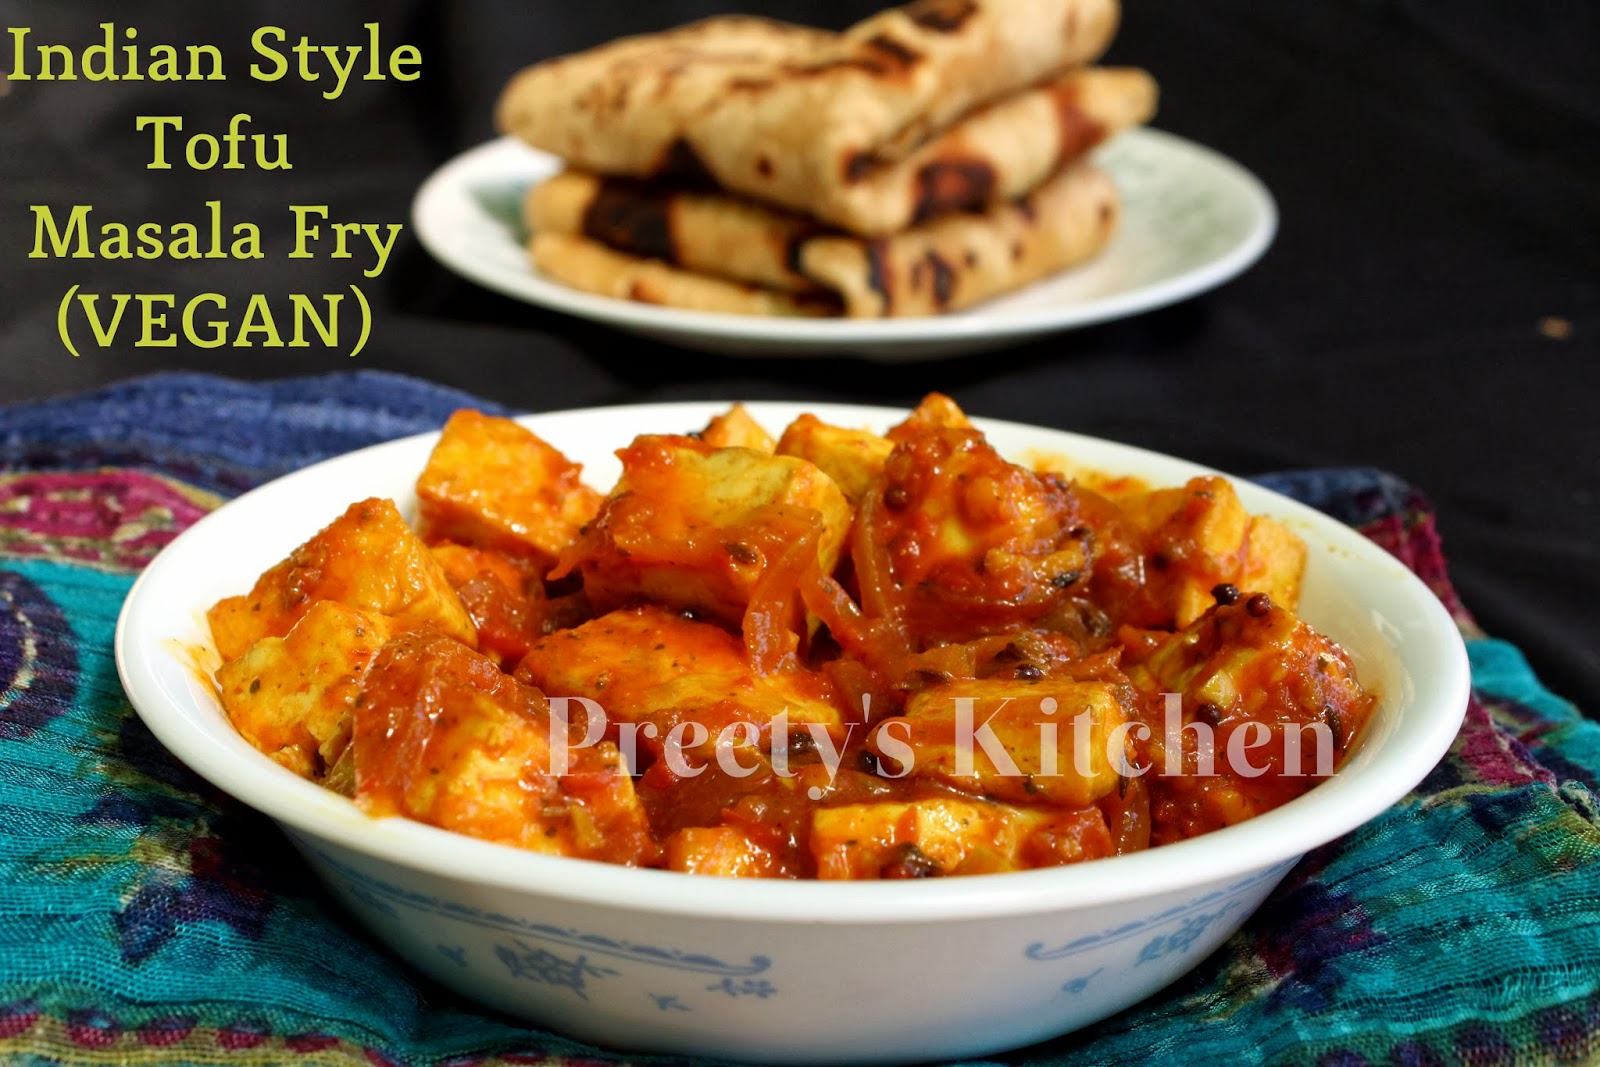 Preetys kitchen indian style tofu masala fry vegan recipe step indian style tofu masala fry vegan recipe step by step pictures forumfinder Gallery